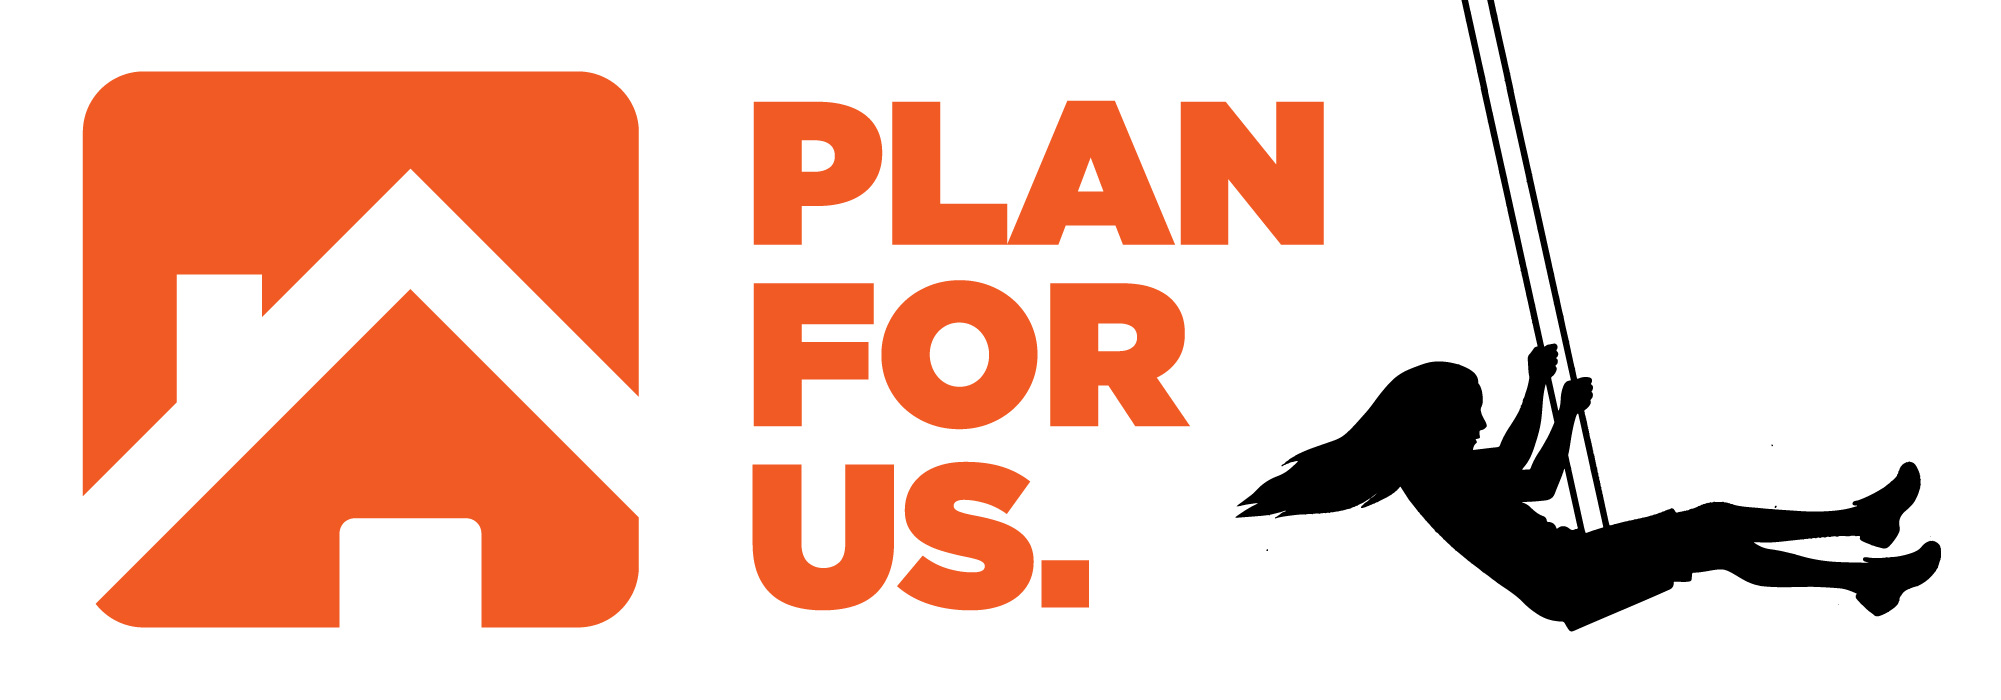 Plan For Us: South Naperville Residents Coalition